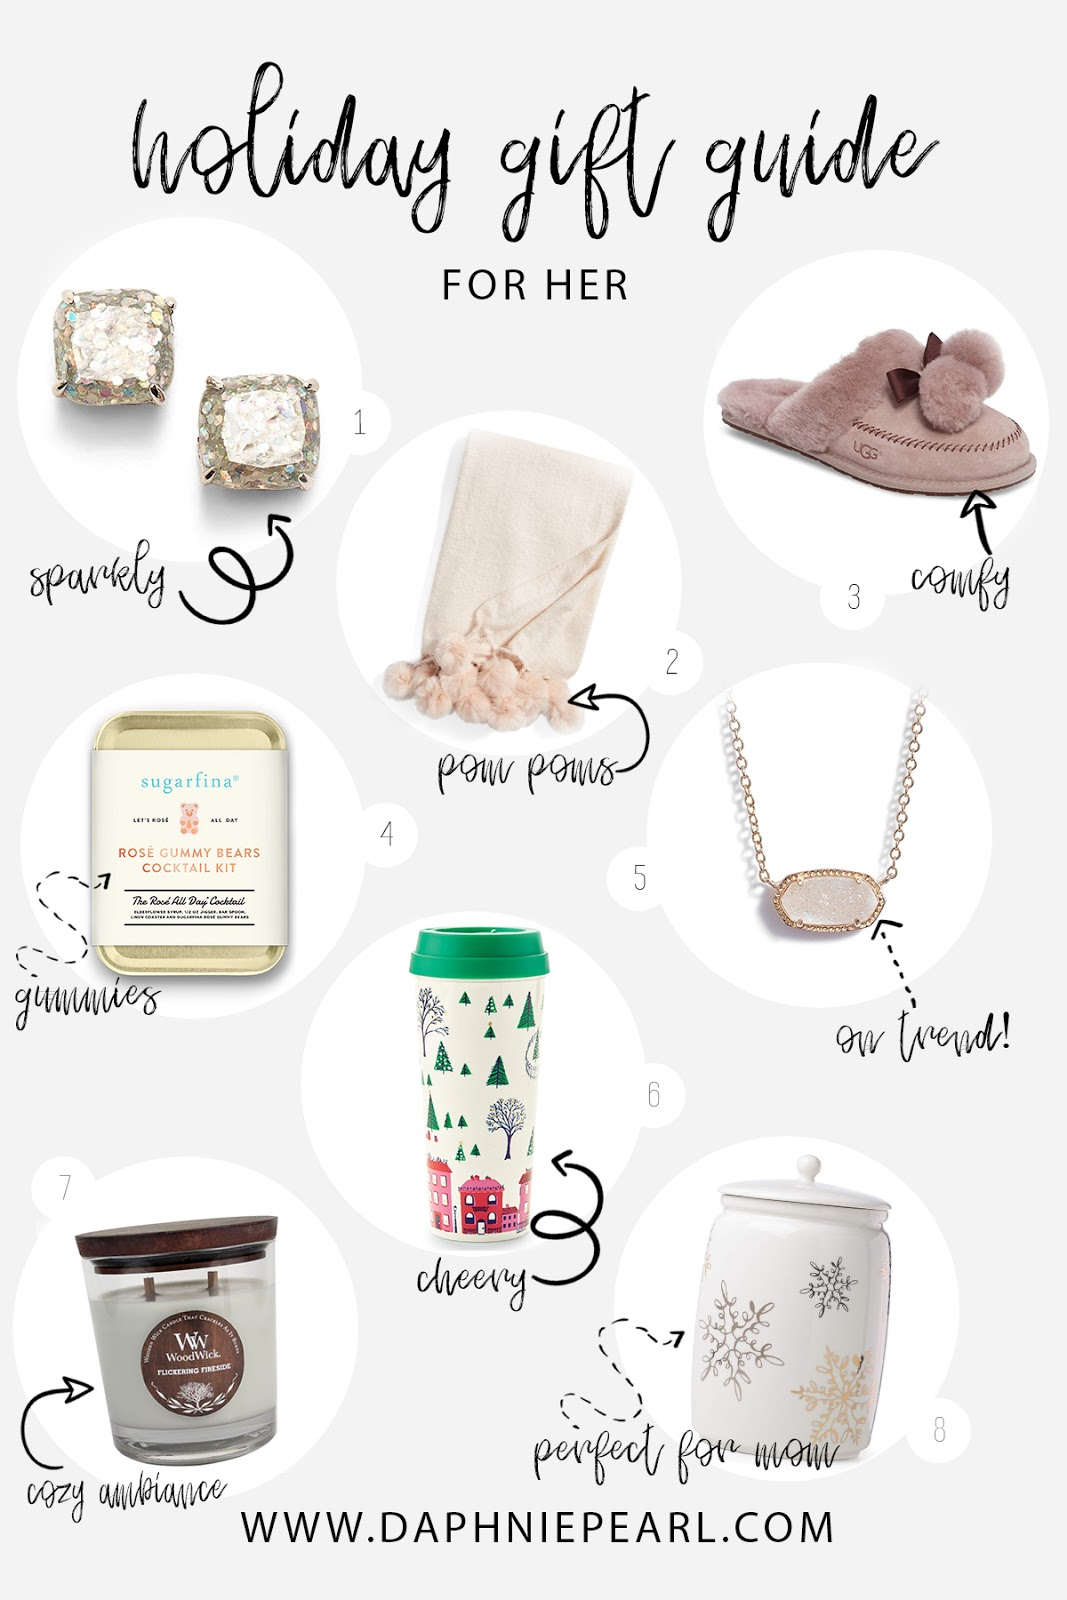 holiday gift guide mom her woman grandma christmas present idea fashionista